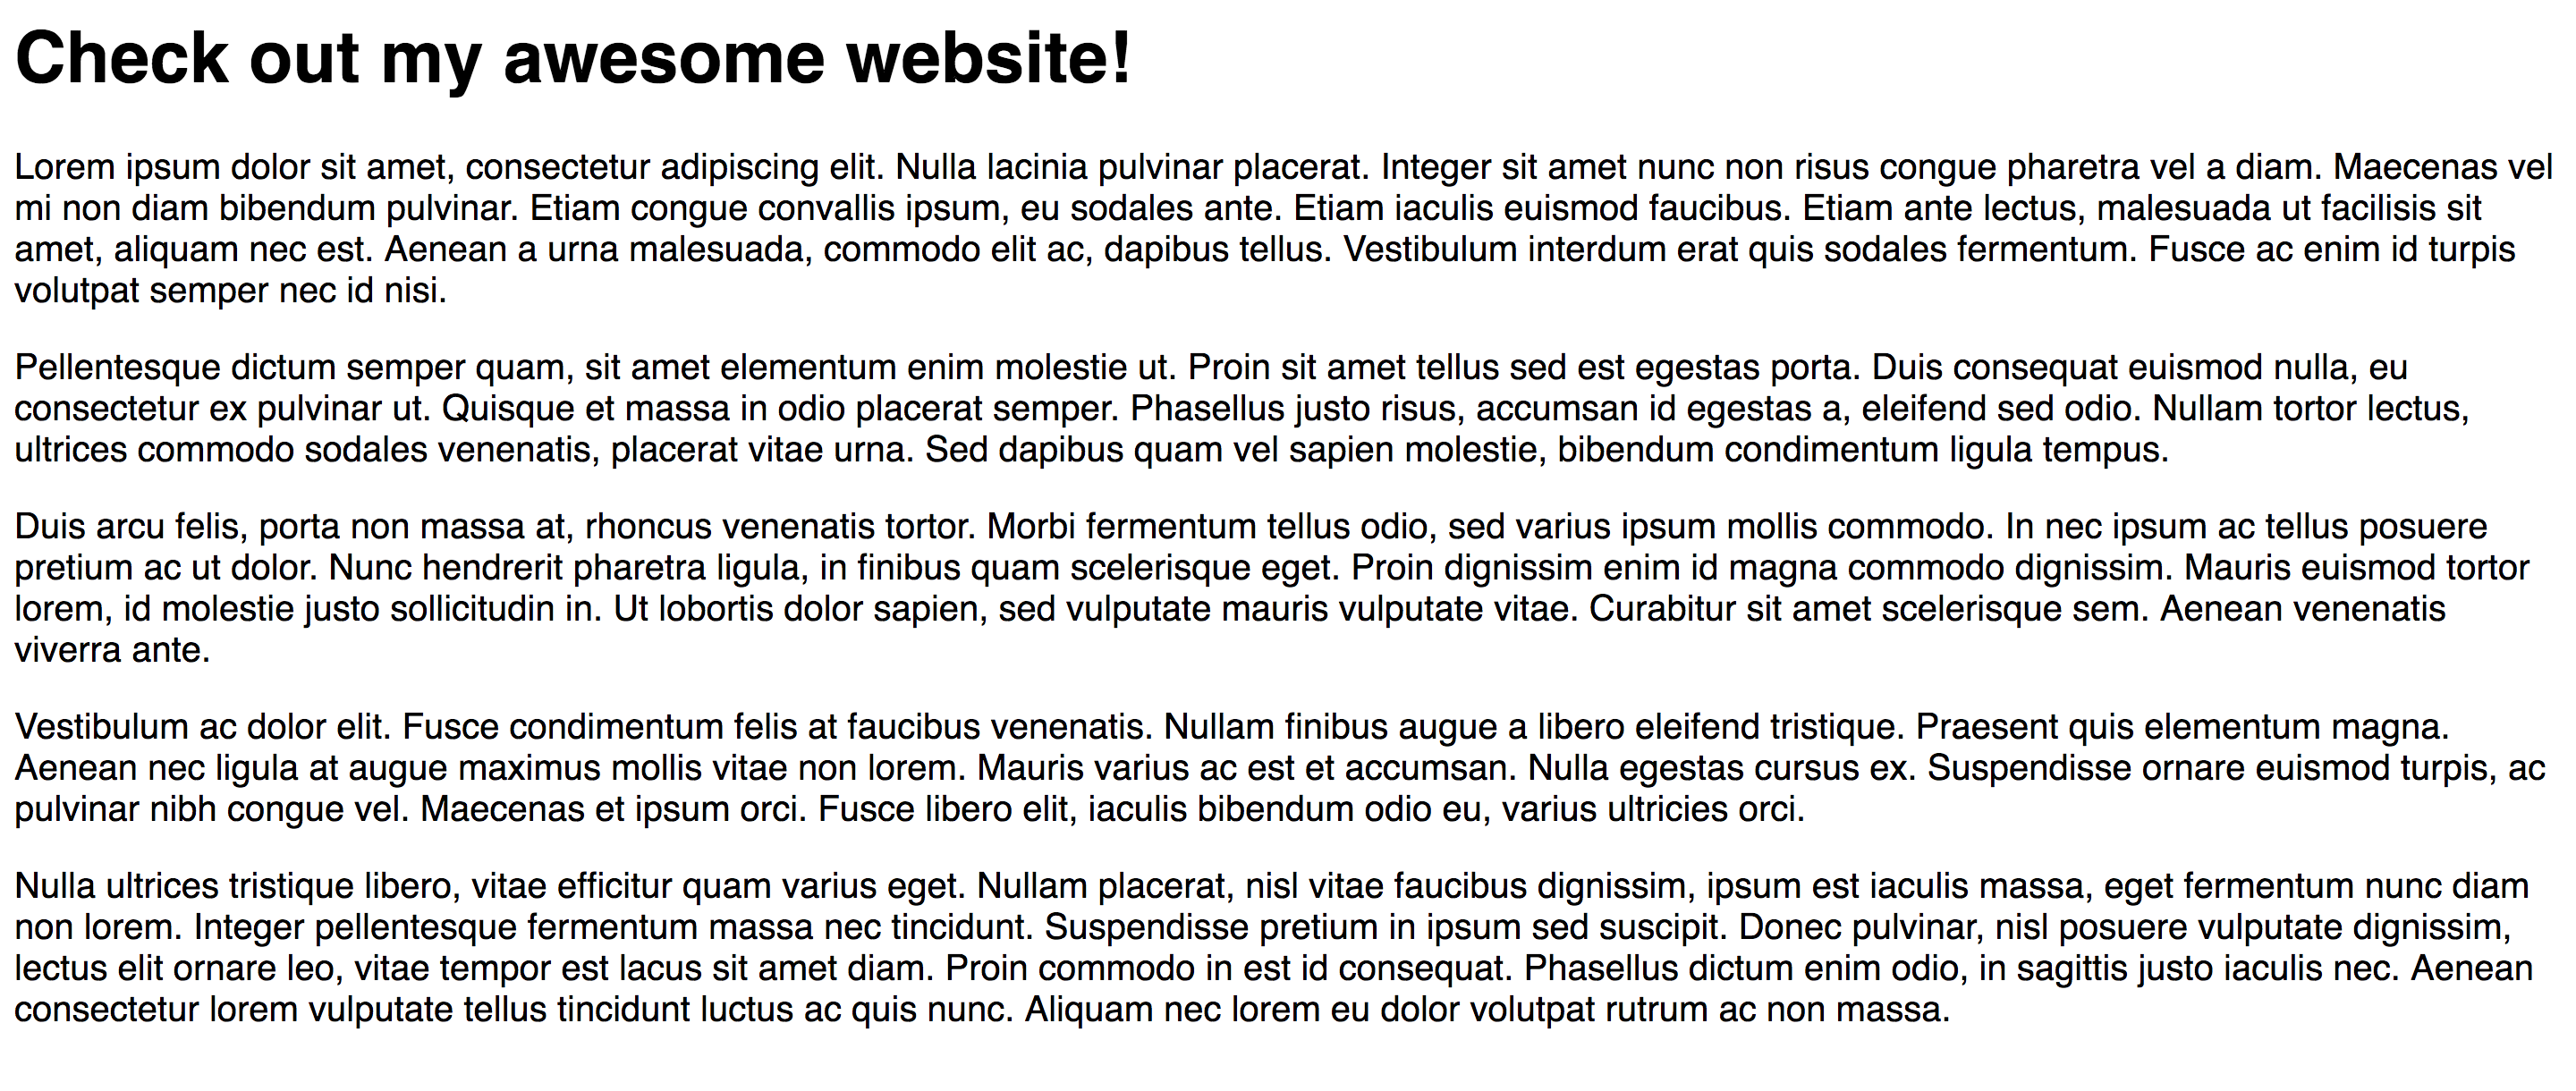 The example website using Helvetica Font (commonly found on many computers) — check [this](https://css-tricks.com/snippets/css/system-font-stack/) link for common system fonts